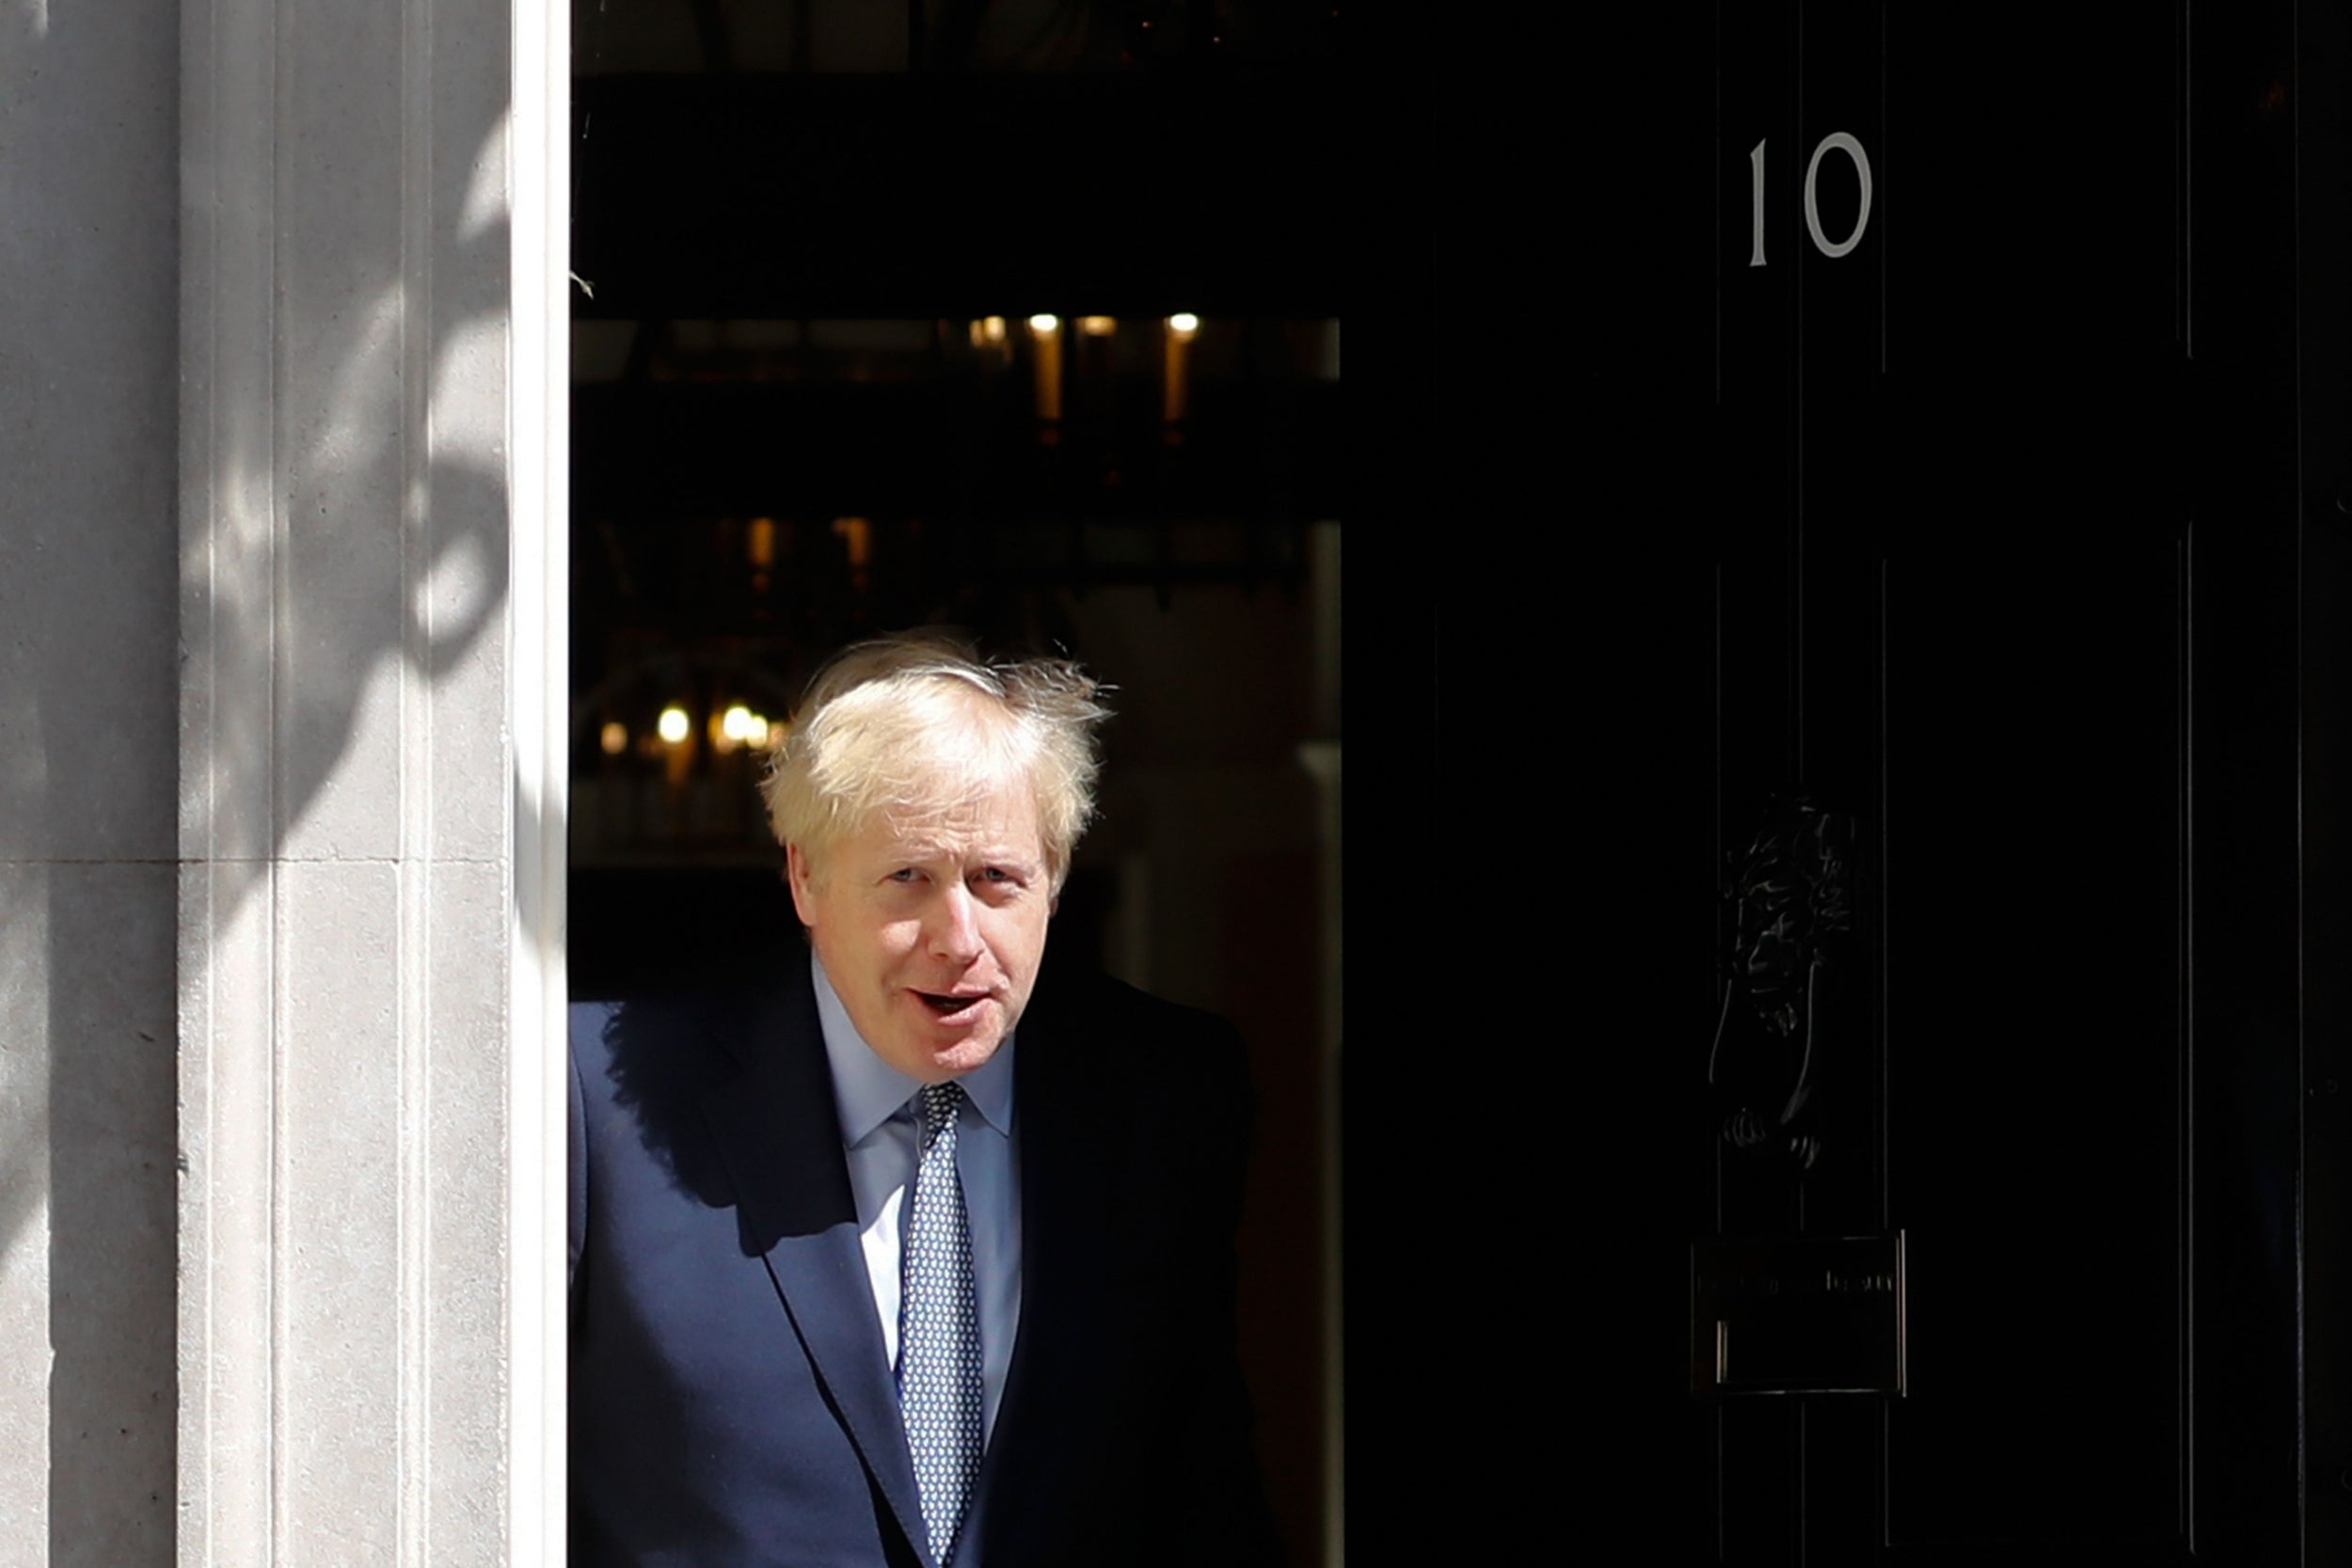 Boris Johnson news – live: Speaker vows to stop PM forcing through no-deal Brexit by suspending parliament, as Hammond launches savage attack on No 10